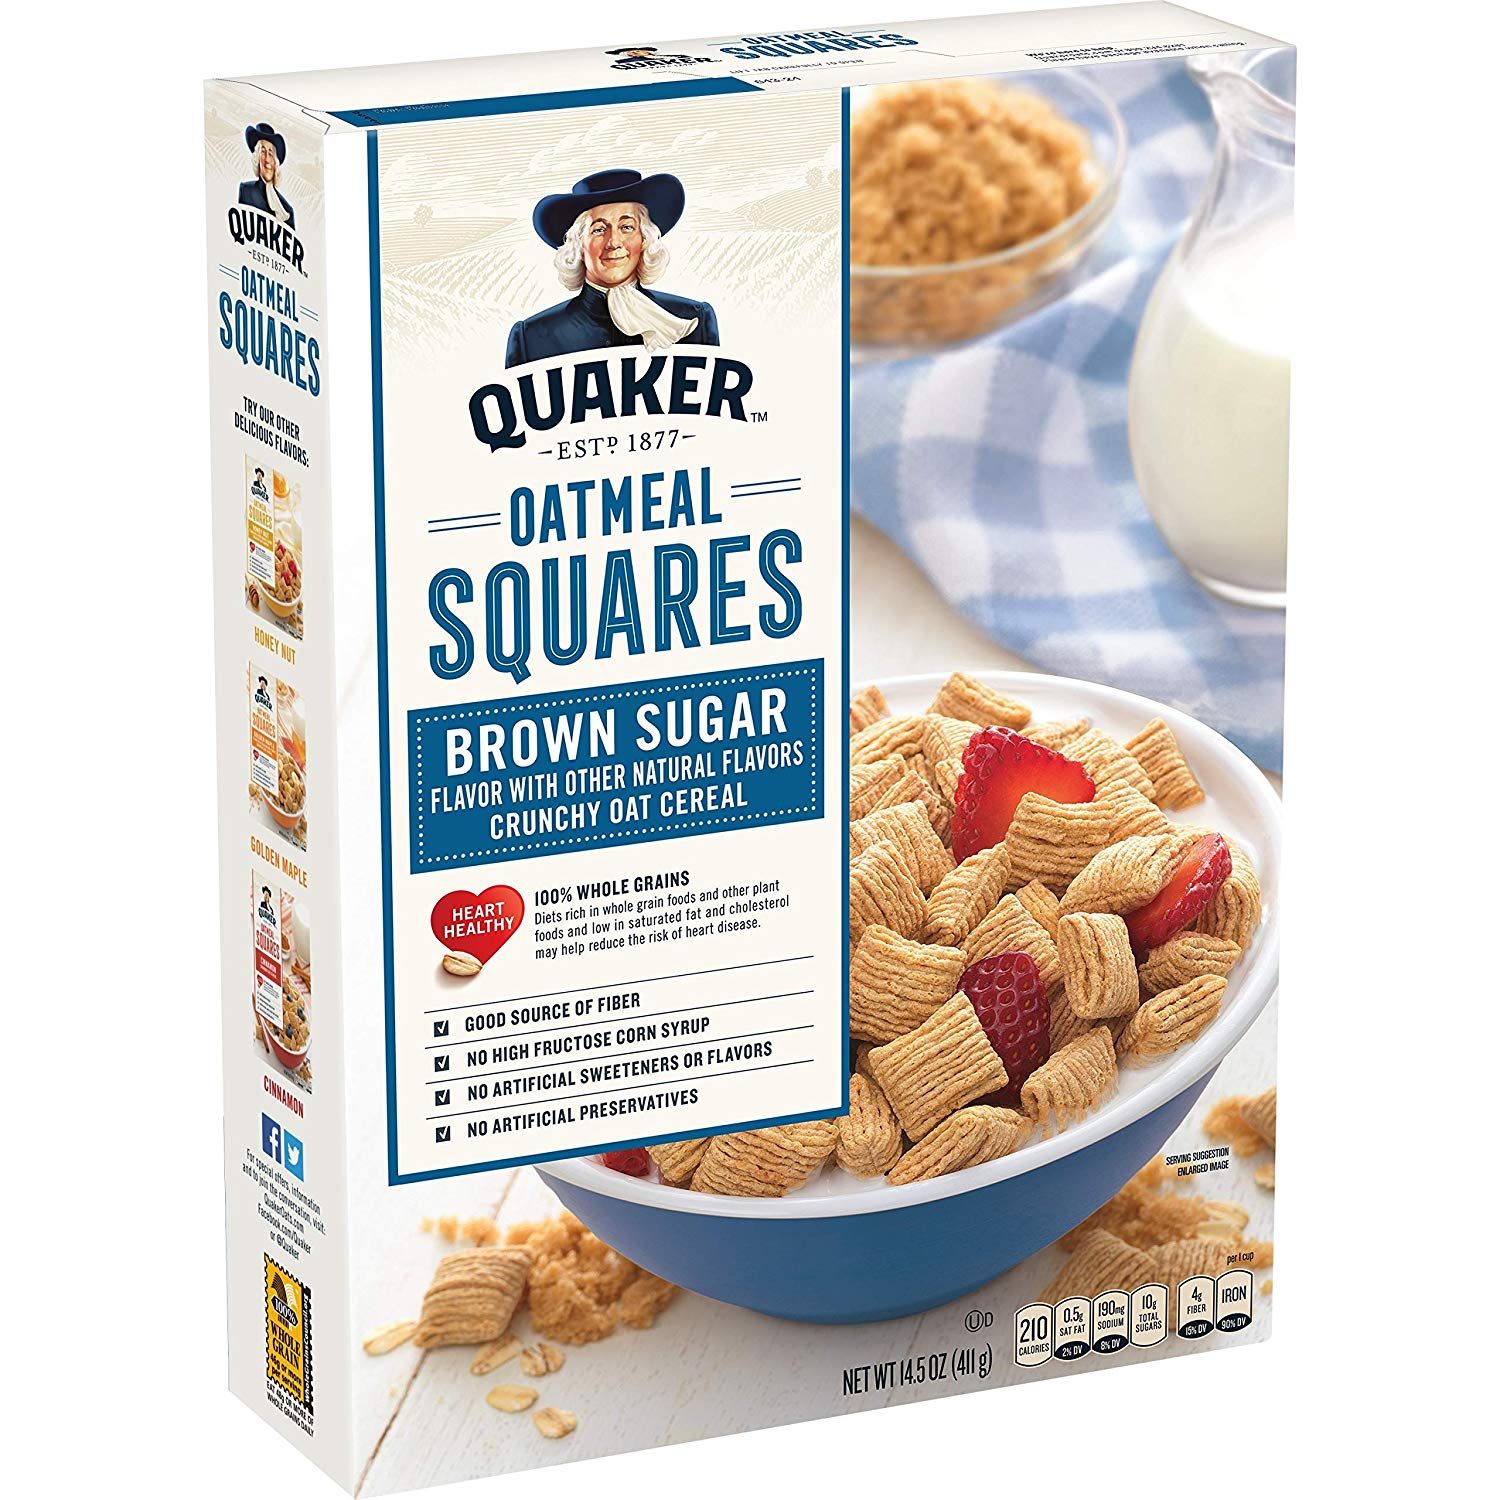 Quaker Oatmeal Squares Cereal As Low As $1.39!